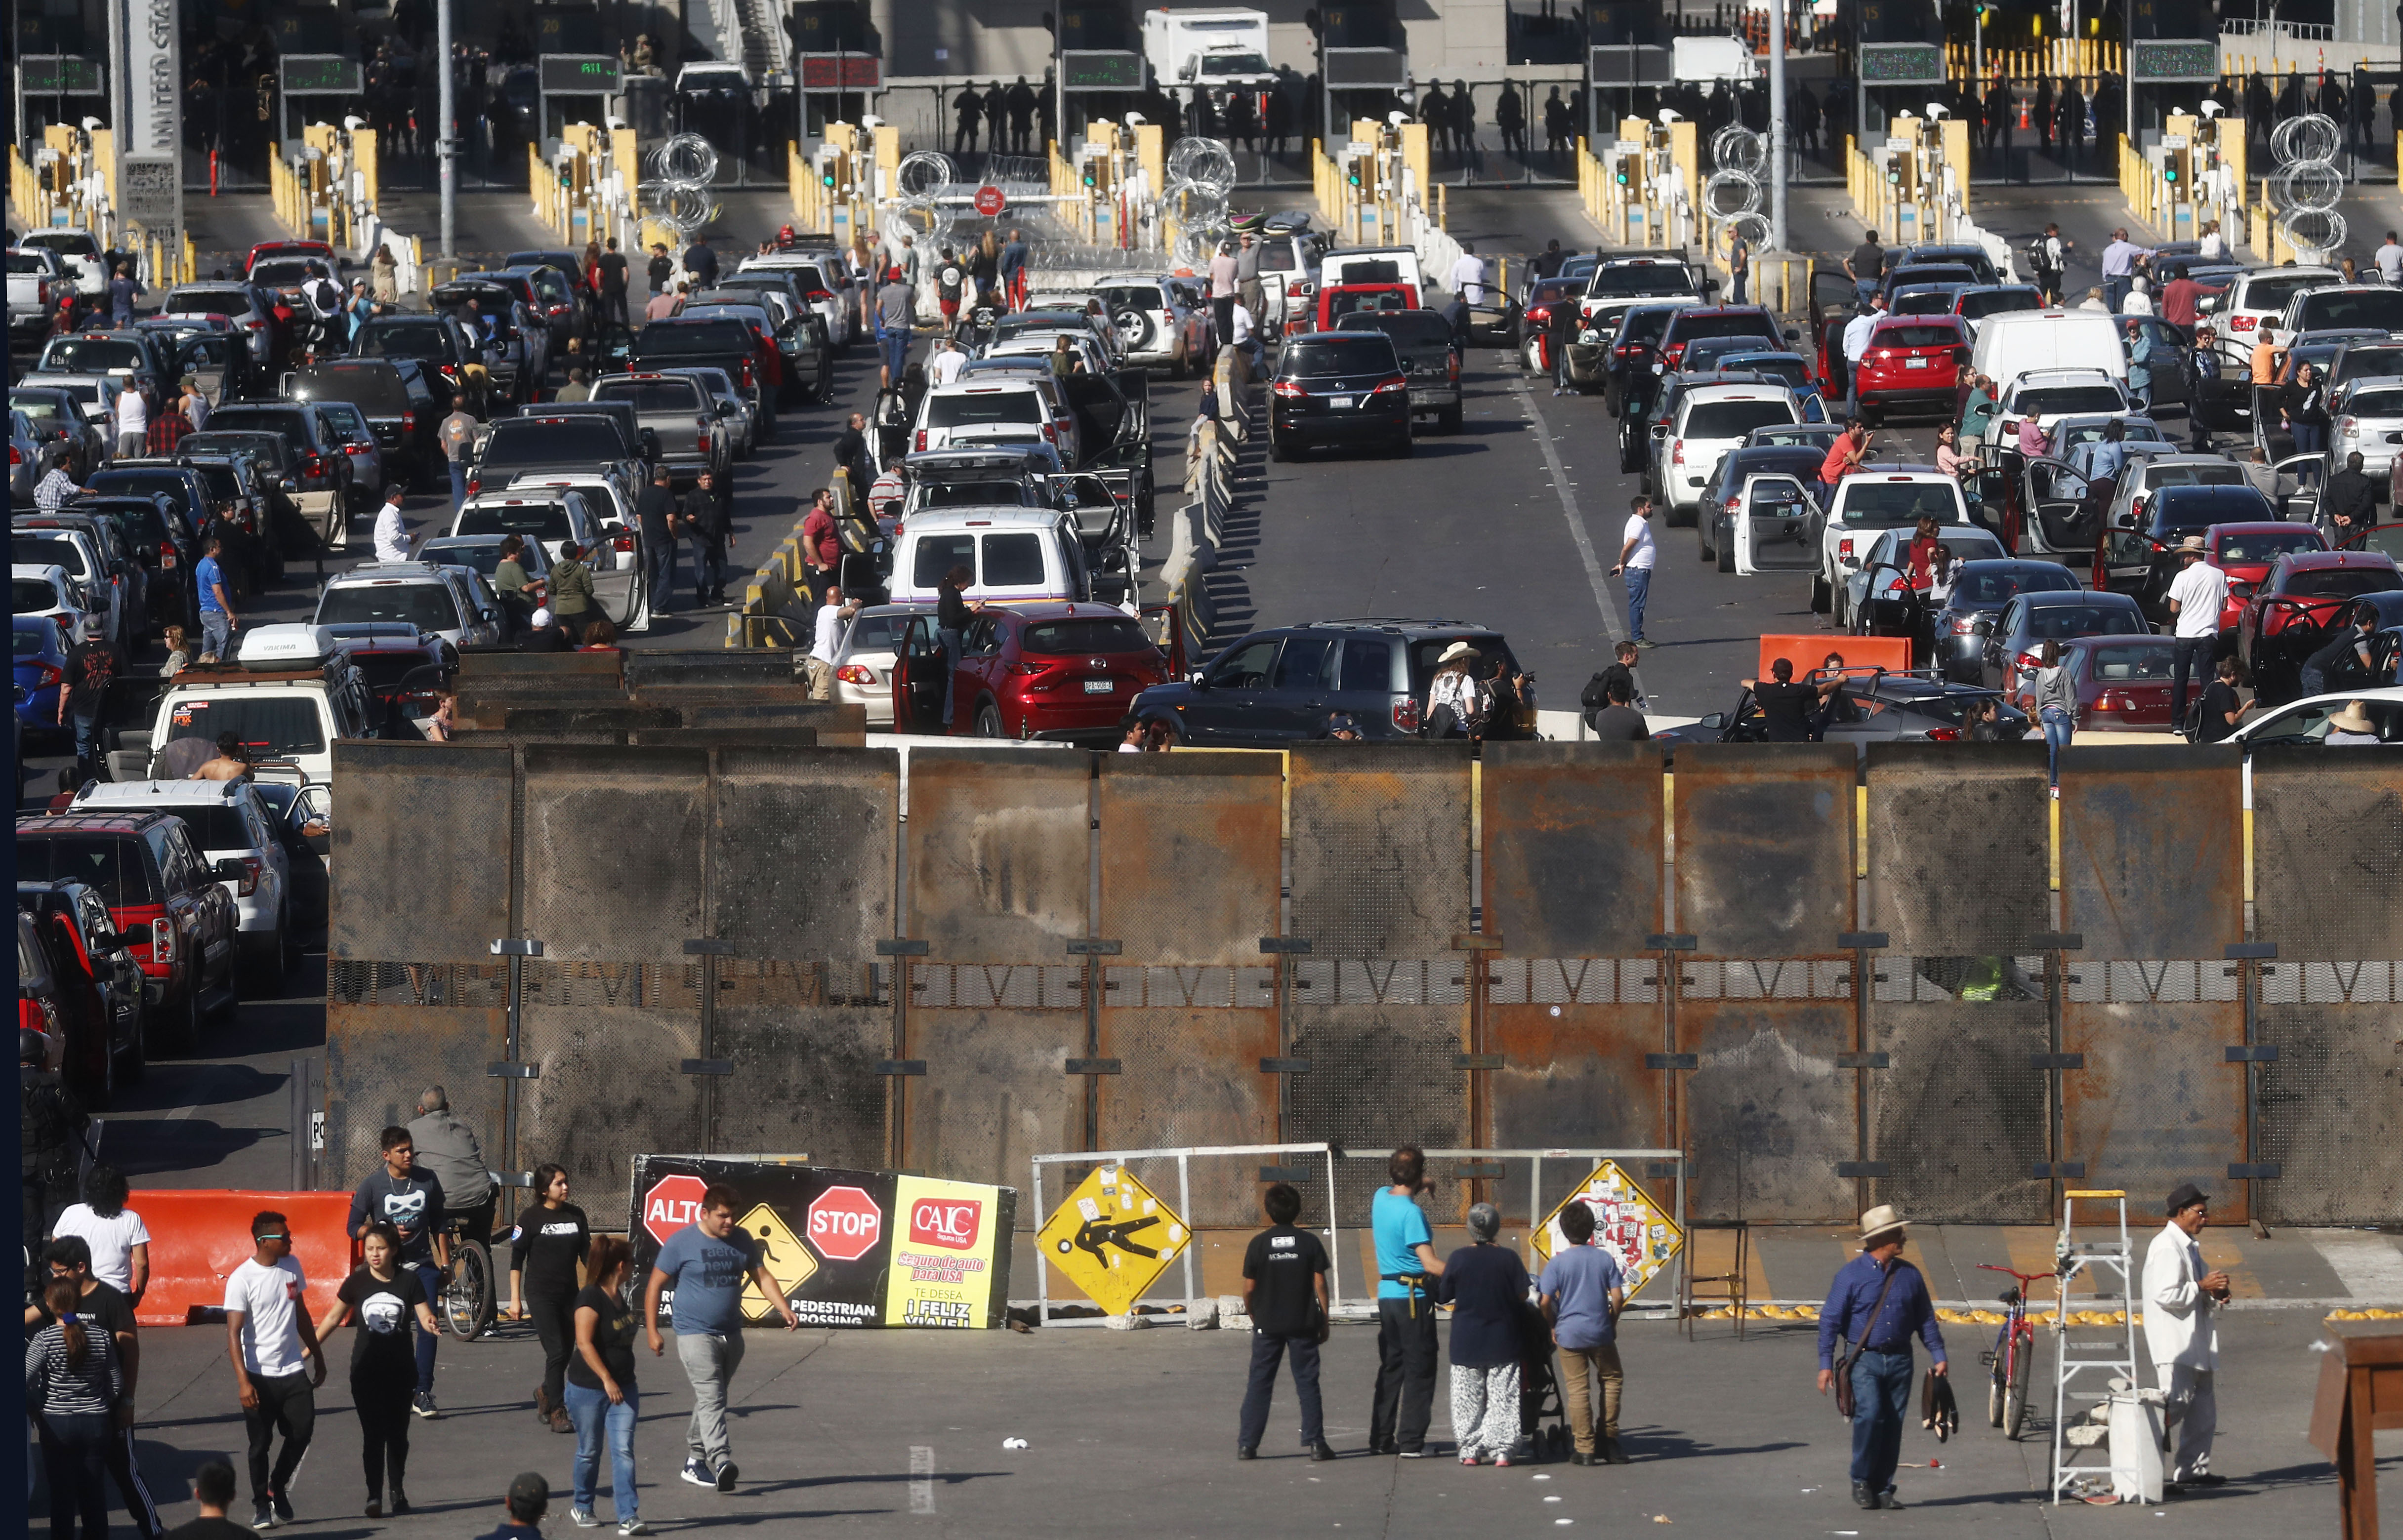 People attempting to cross in the U.S. look on as the San Ysidro port of entry stands closed at the U.S.-Mexico border on November 25, 2018 in Tijuana, Mexico. Migrants circumvented a police blockade as they attempted to approach the El Chaparral port of entry and U.S. Customs and Border Protection temporarily closed the two ports of entry on the border with Tijuana in response. Around 6,000 migrants from Central America have arrived in the city with the mayor of Tijuana declaring the situation a 'humanitarian crisis'. (Photo by Mario Tama/Getty Images)